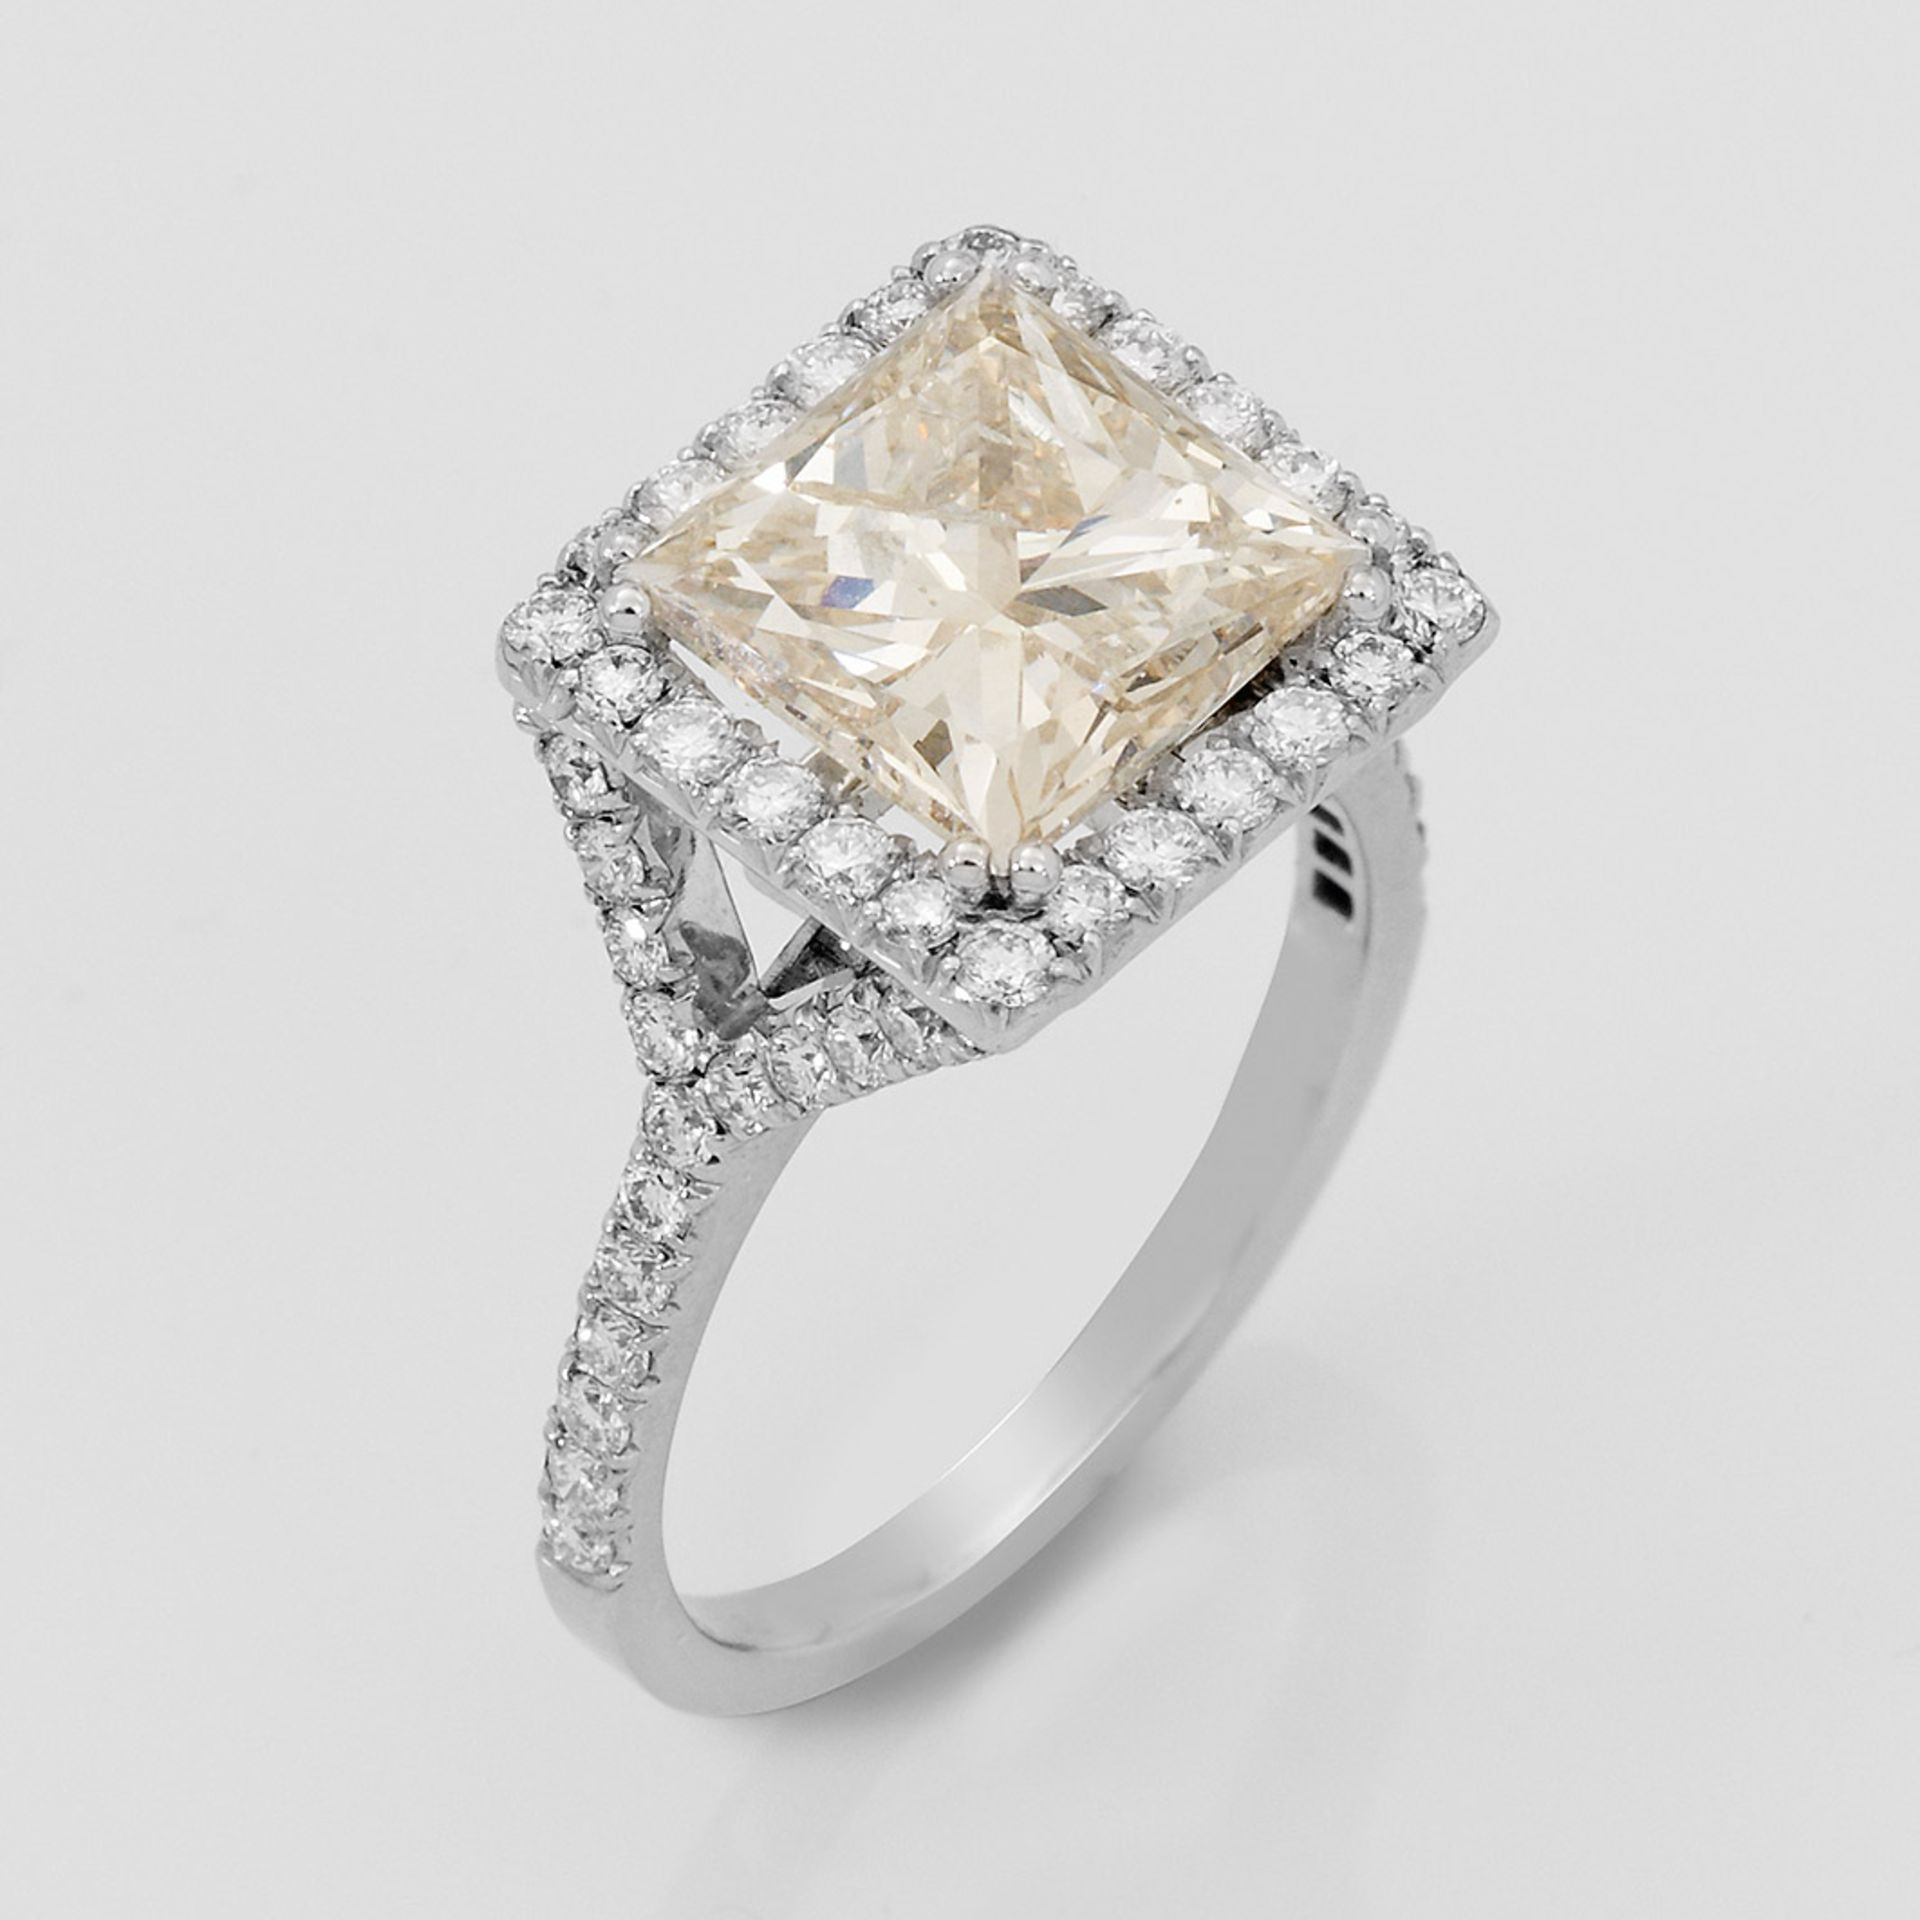 Eleganter Diamant-Solitärring